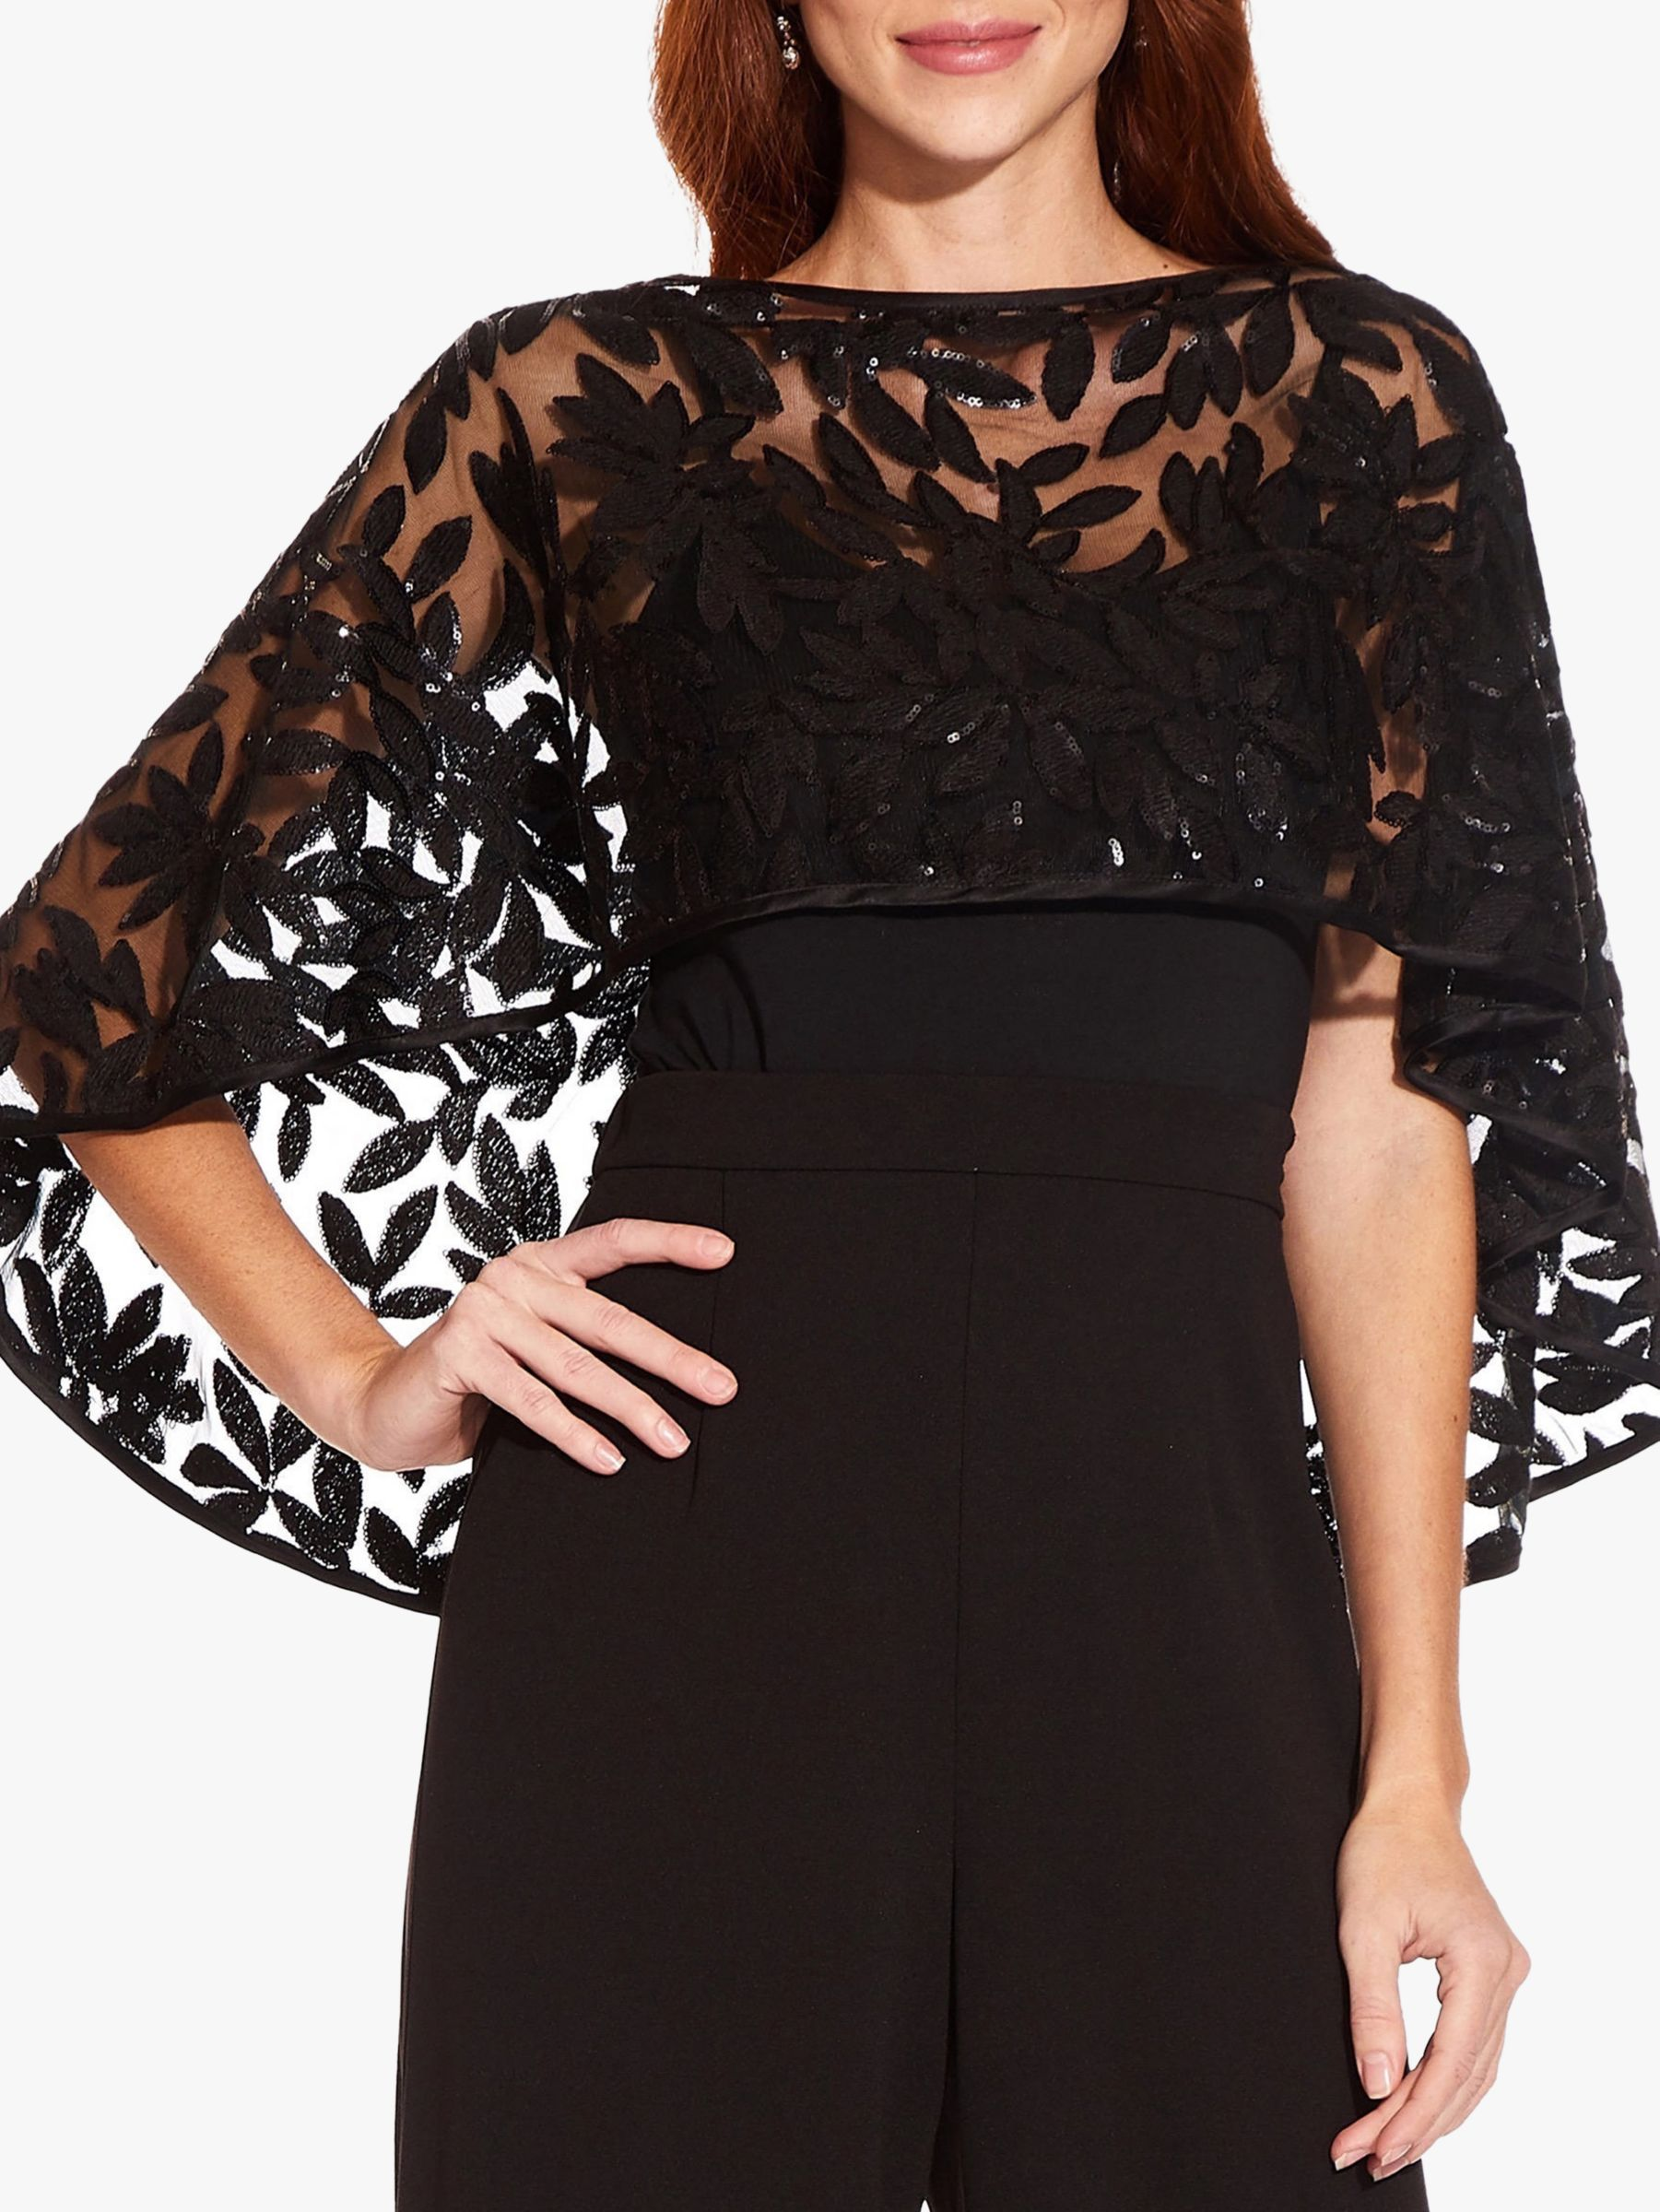 Adrianna Papell Adrianna Papell Embroidered Cover-Up Wrap, Black